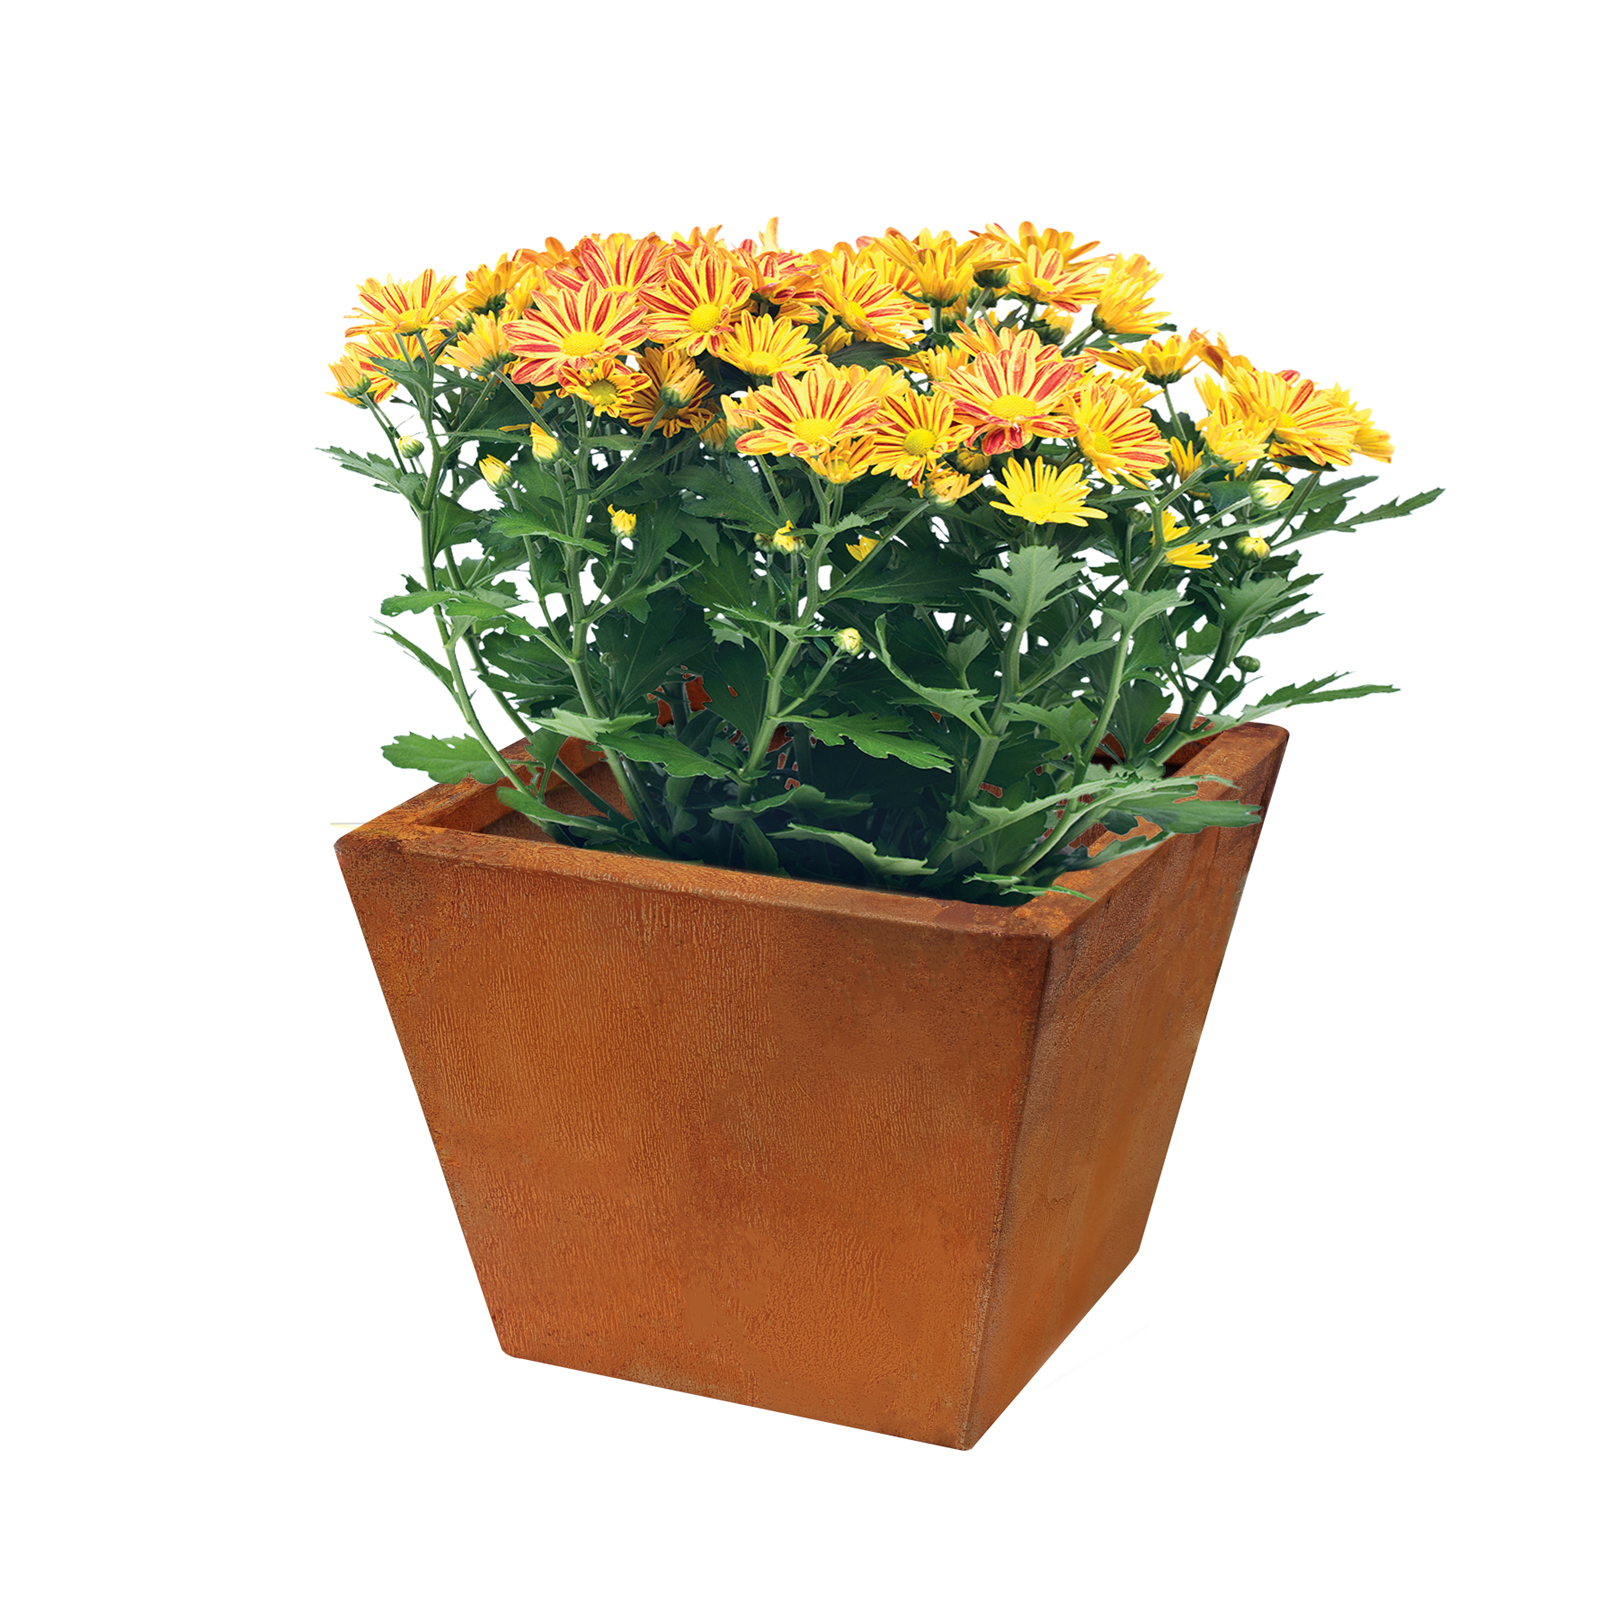 18483 copa planter with plants 250x250x200